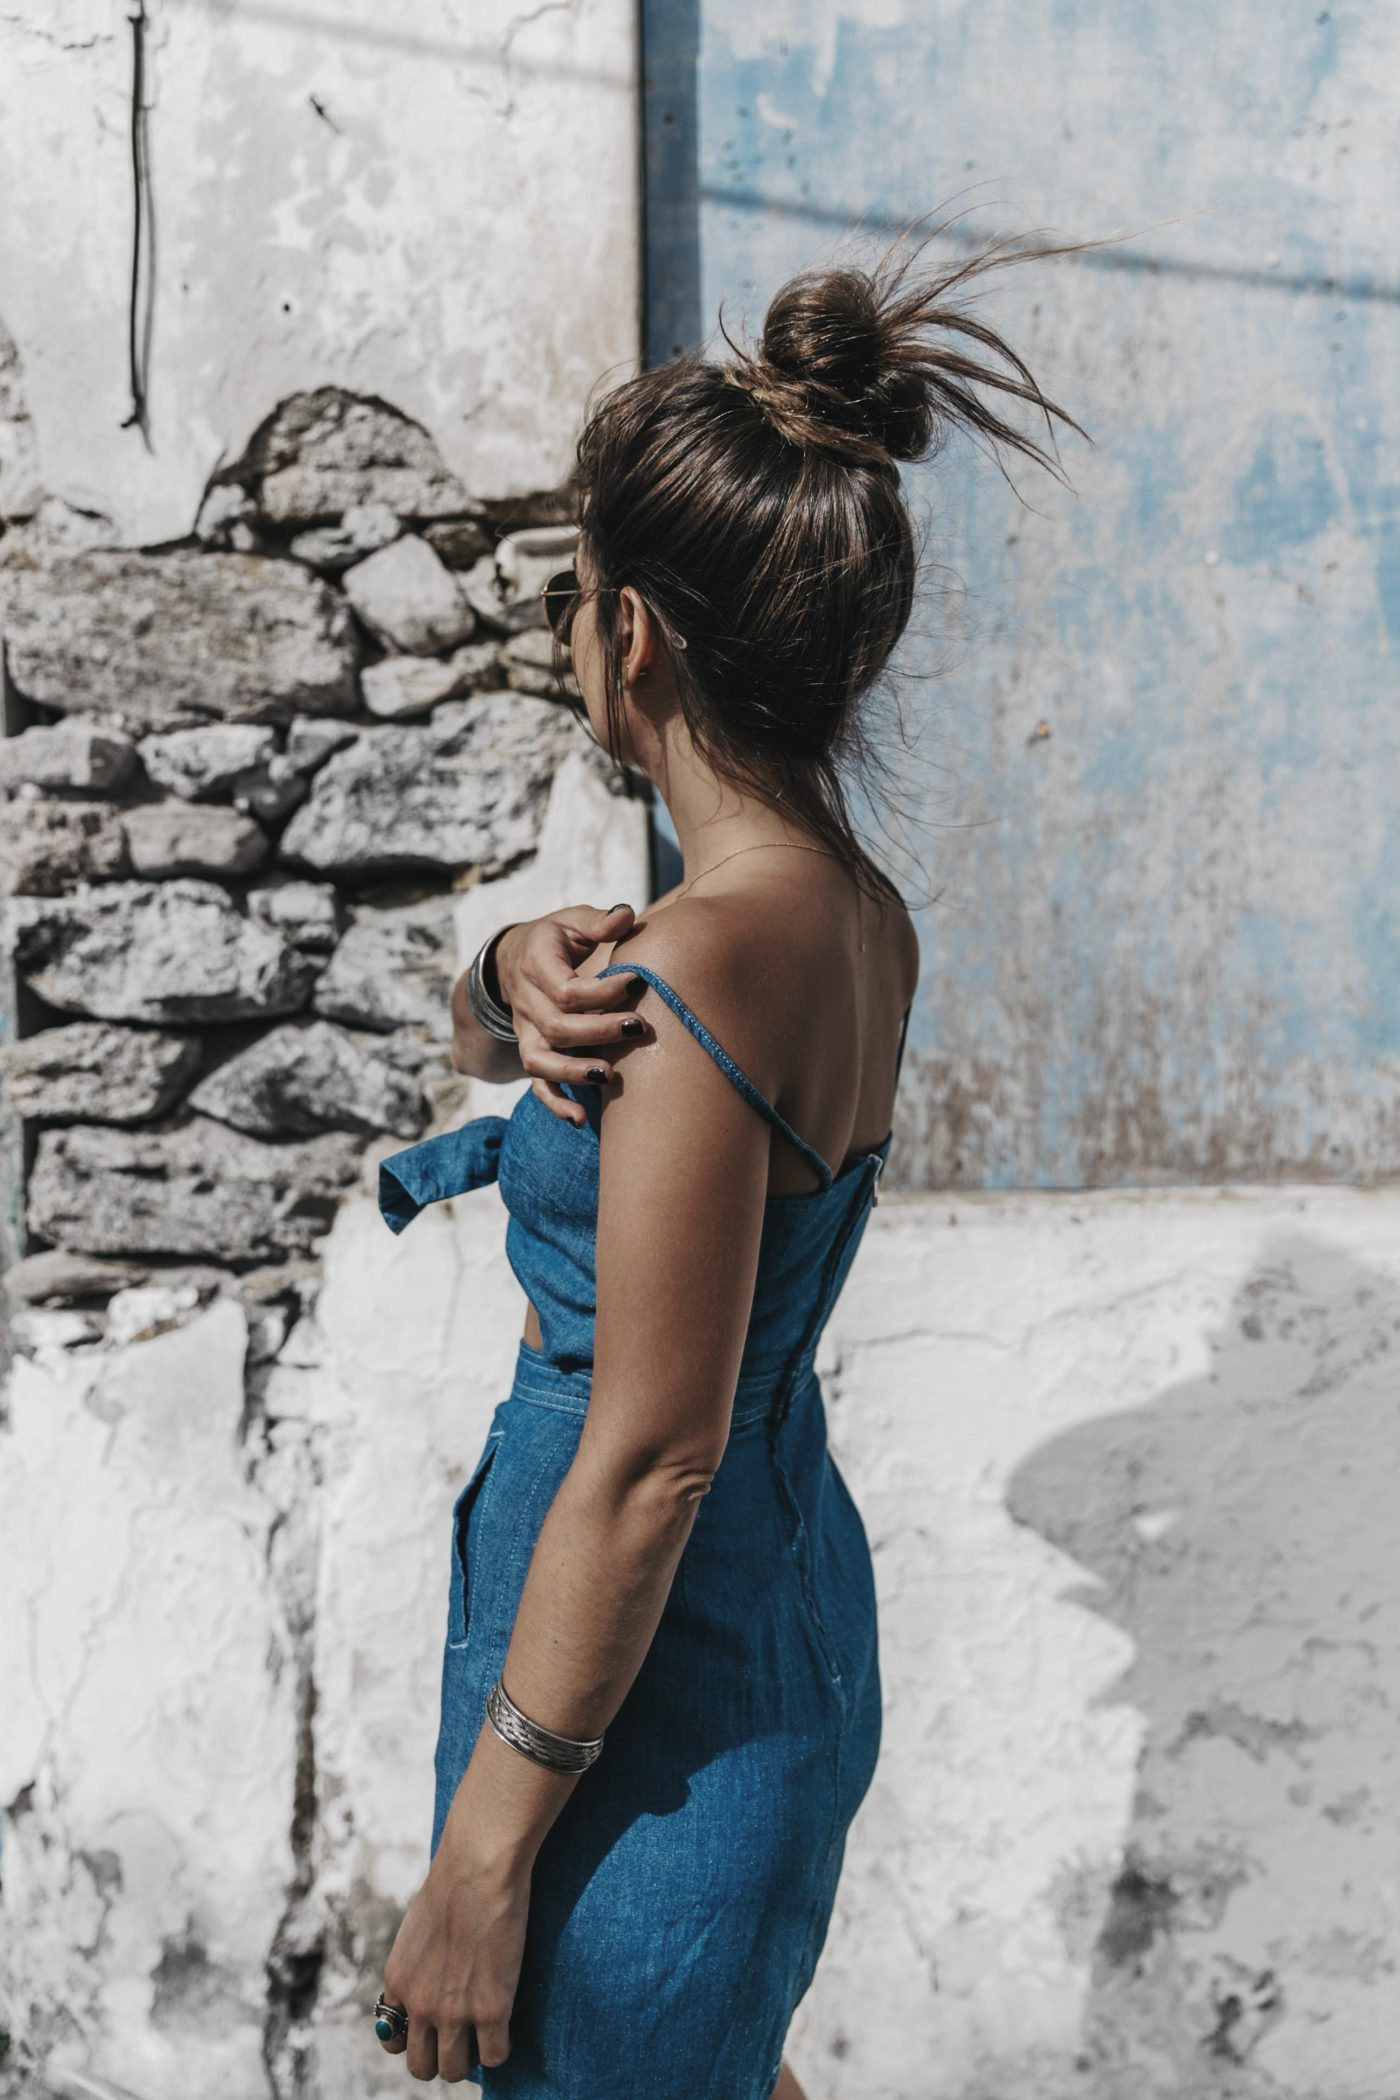 Topshop_Festival-Denim_Cut_Out_Dress-Yellow_Sandals-Outfit-Topknot-Mikonos-Street_Style-54